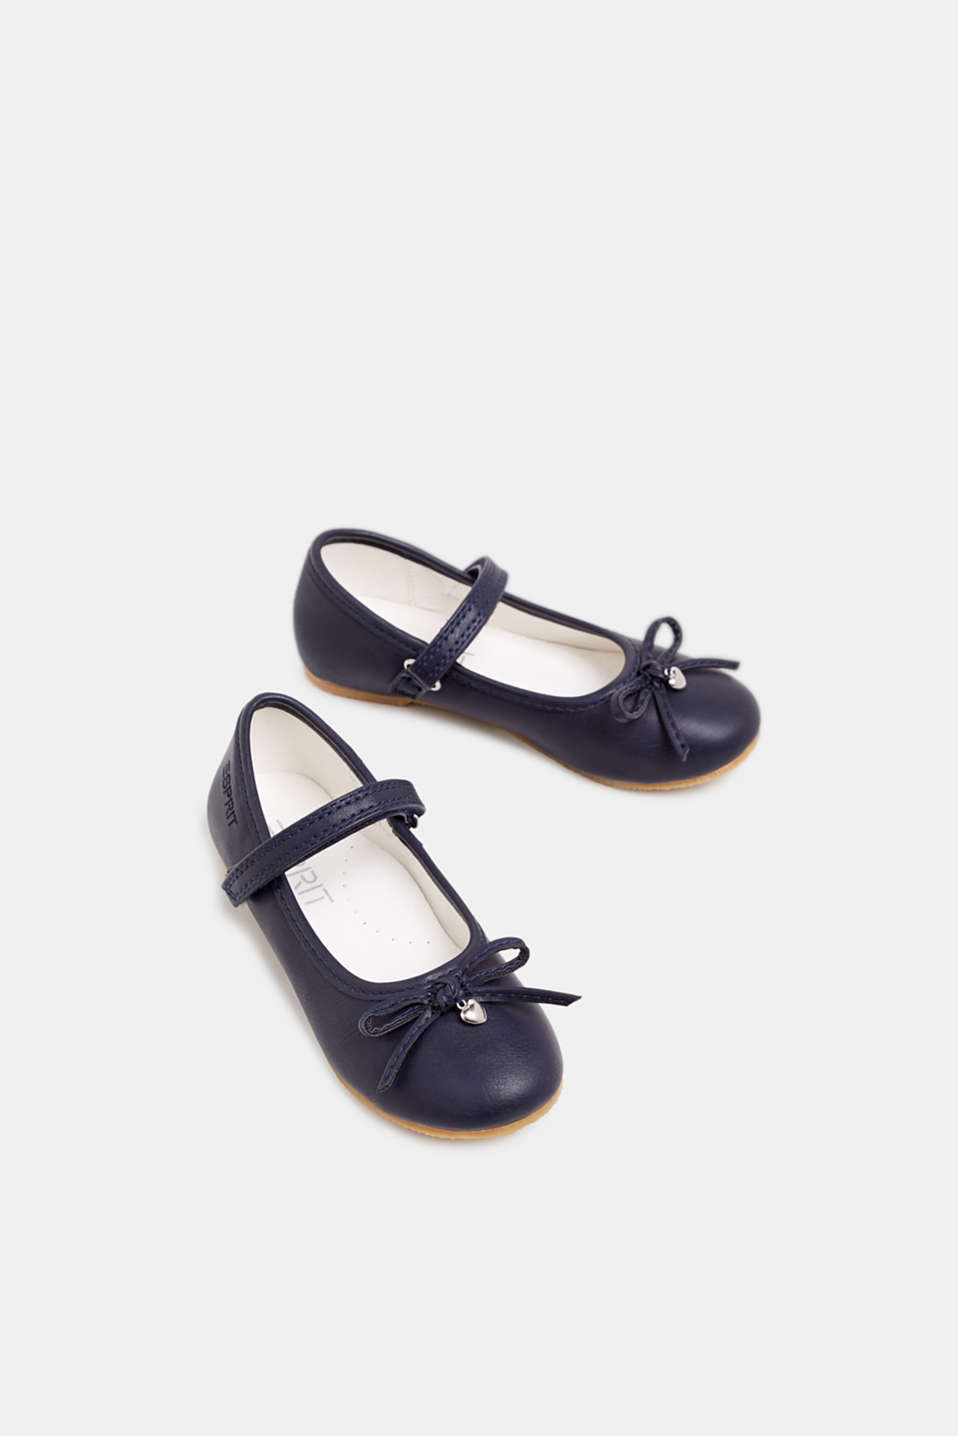 Ballerinas with Velcro straps, in faux leather, NAVY, detail image number 1